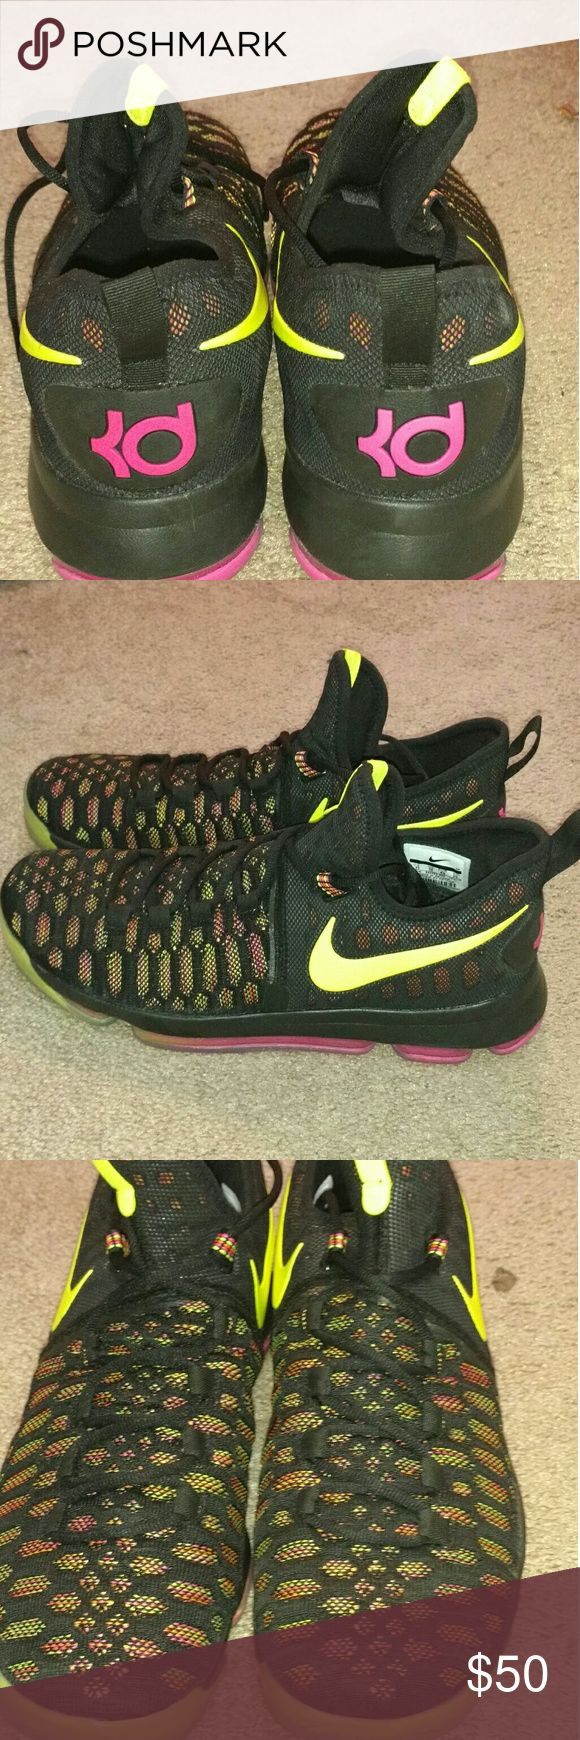 Nike Kd Shoes -These are perfect for basketball or for style -these are unisex -lowr tops -(10 men's 11 women's) -these are Kevin Durant's line of Nike shoes -WARN ONCE  -ALL OFFERS NO MATTER THE PRICE ARE CONSIDERED Nike Shoes Athletic Shoes